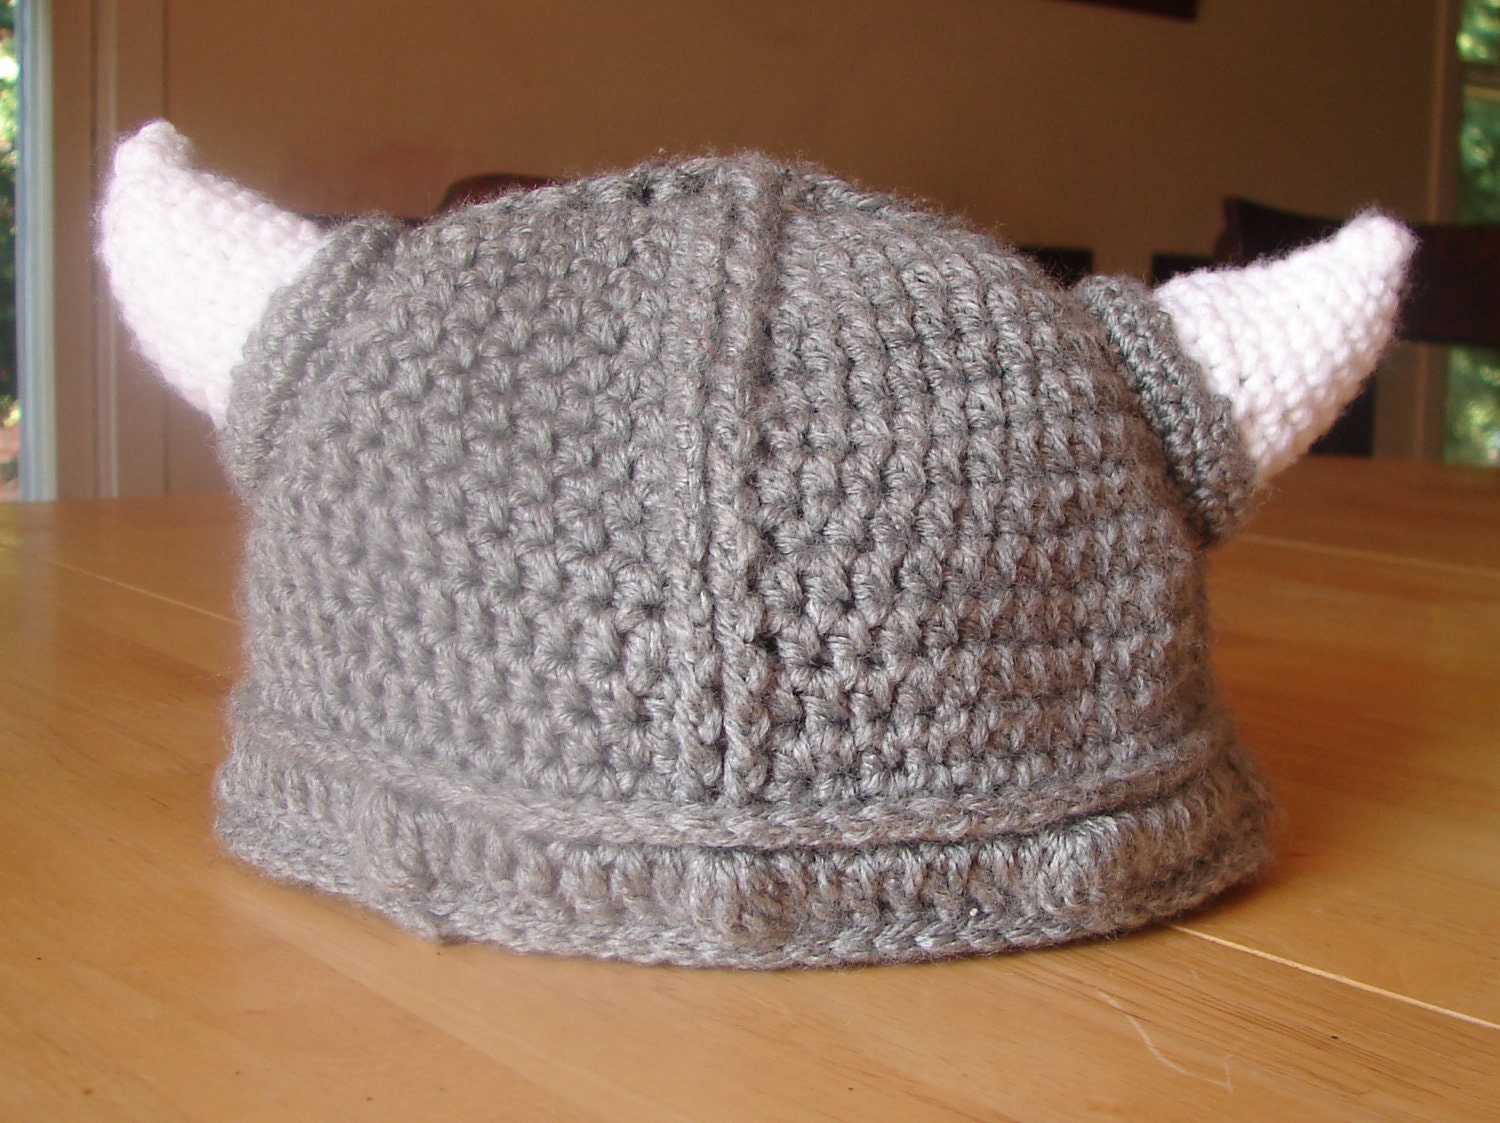 Knitting Patterns For Viking Hat : Moobie Grace Designs: Im Not Getting Back Out of the Bed Again Today!!